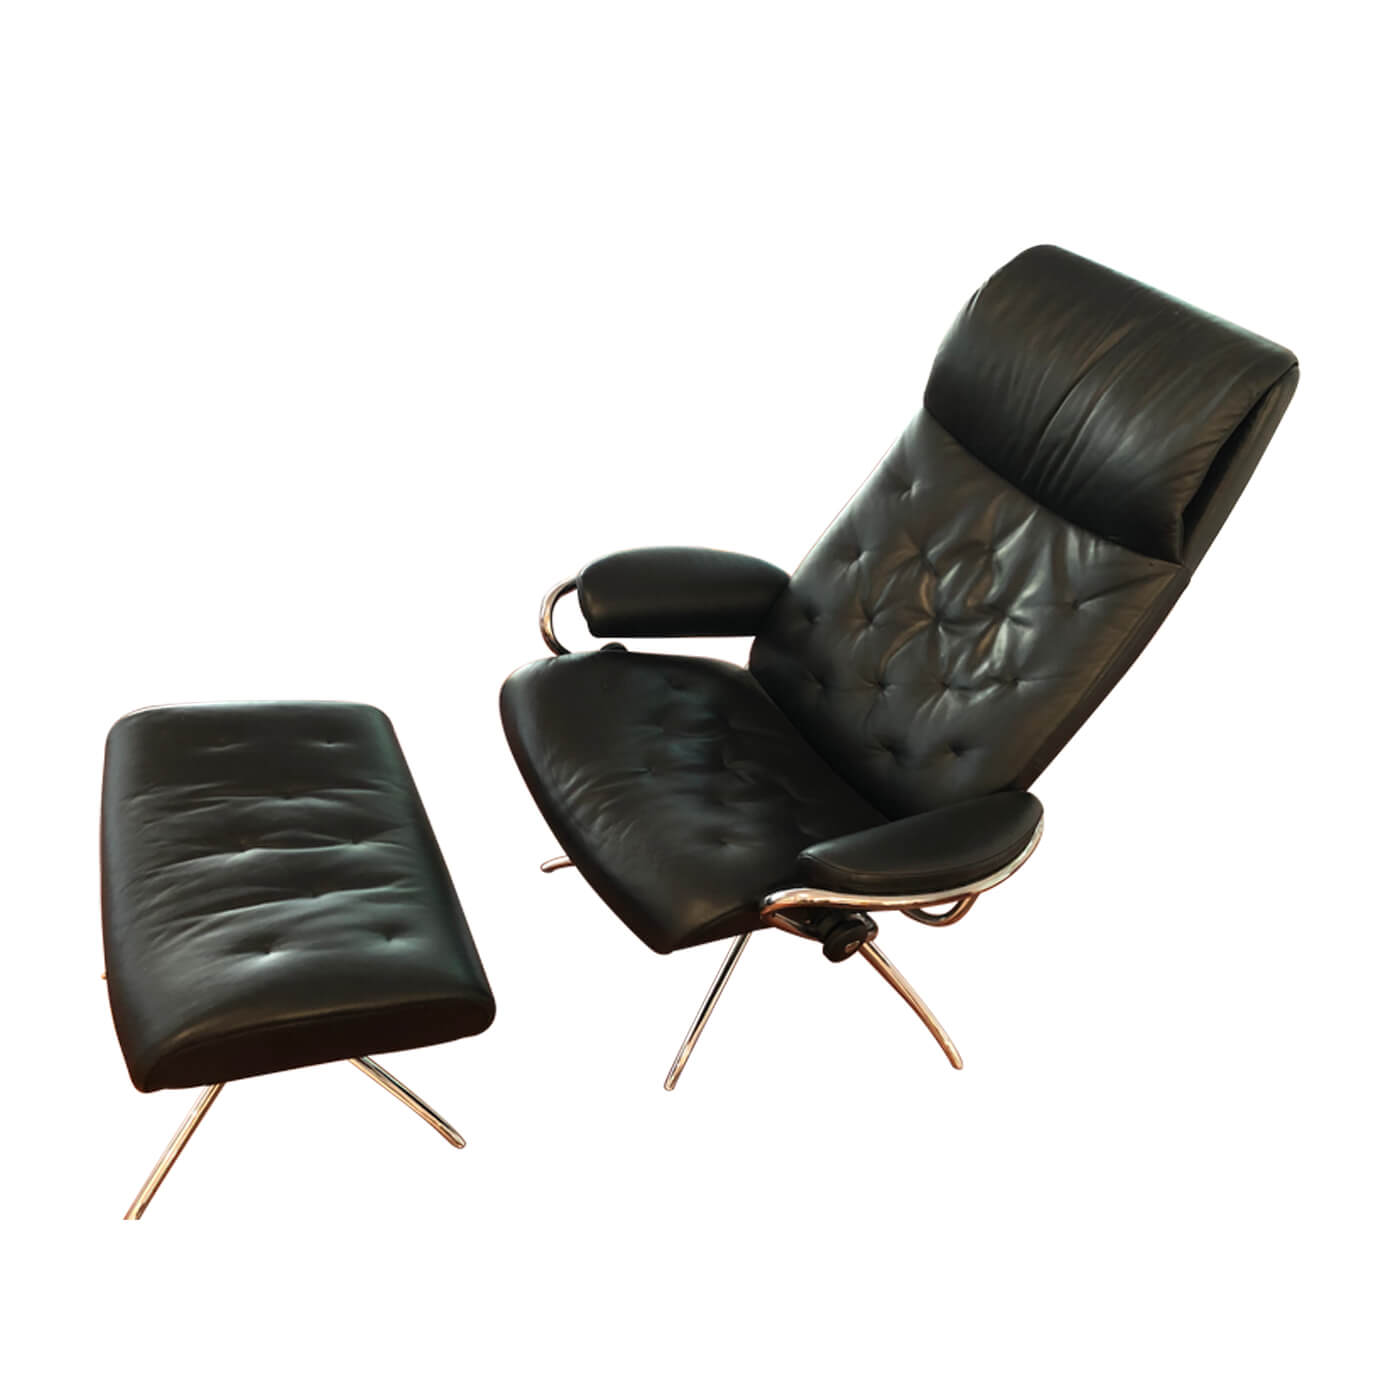 Stressless London Recliner with mathcing ottoman, second hand on Two Design Lovers